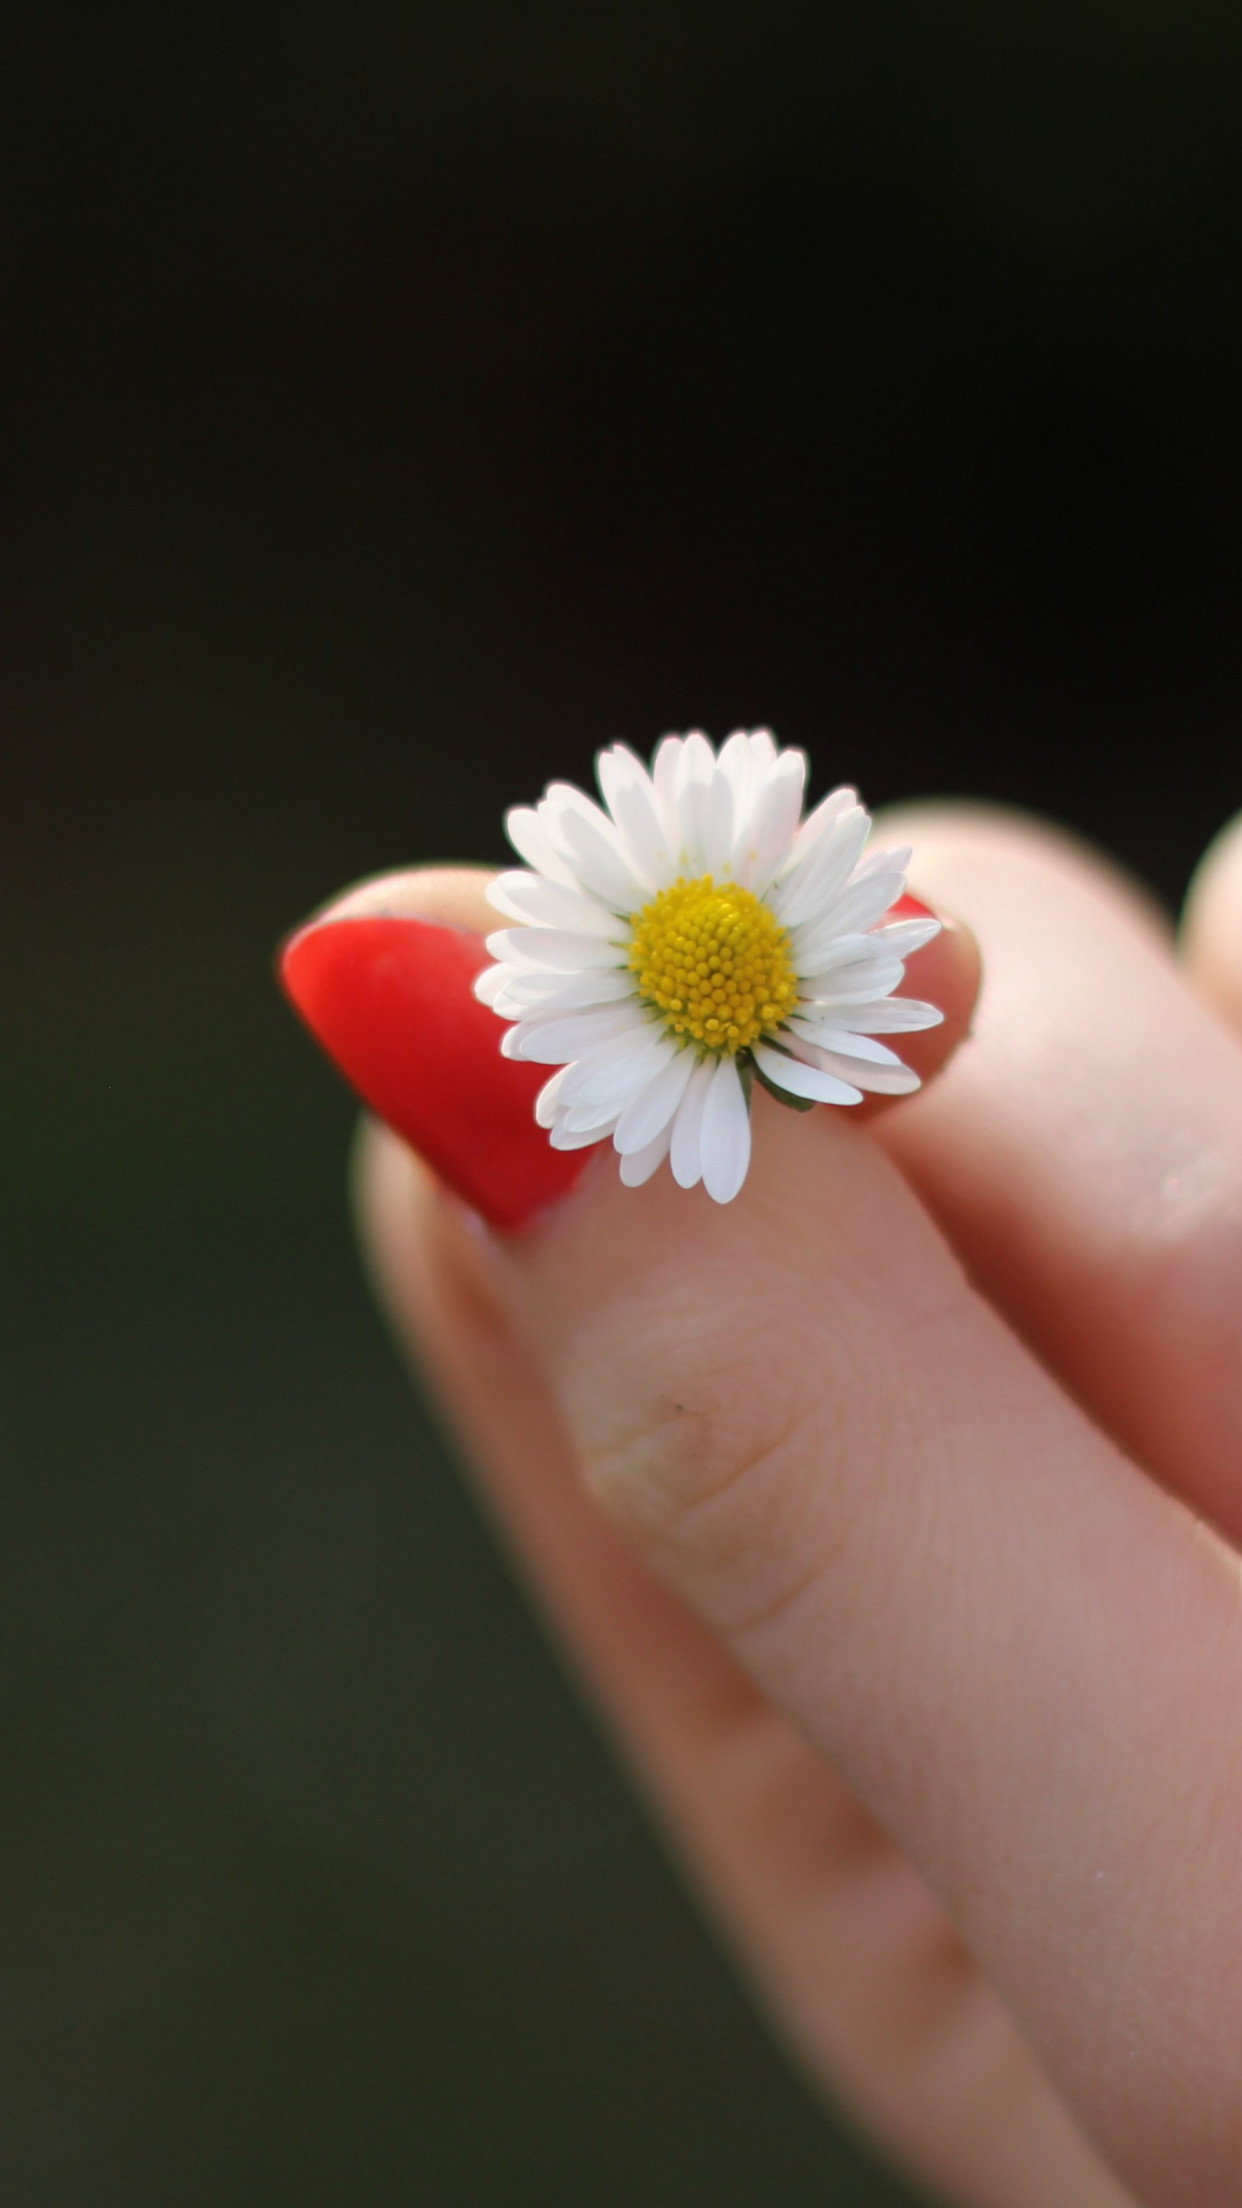 Girl with red nails and a daisy flower wallpaper 1242x2208